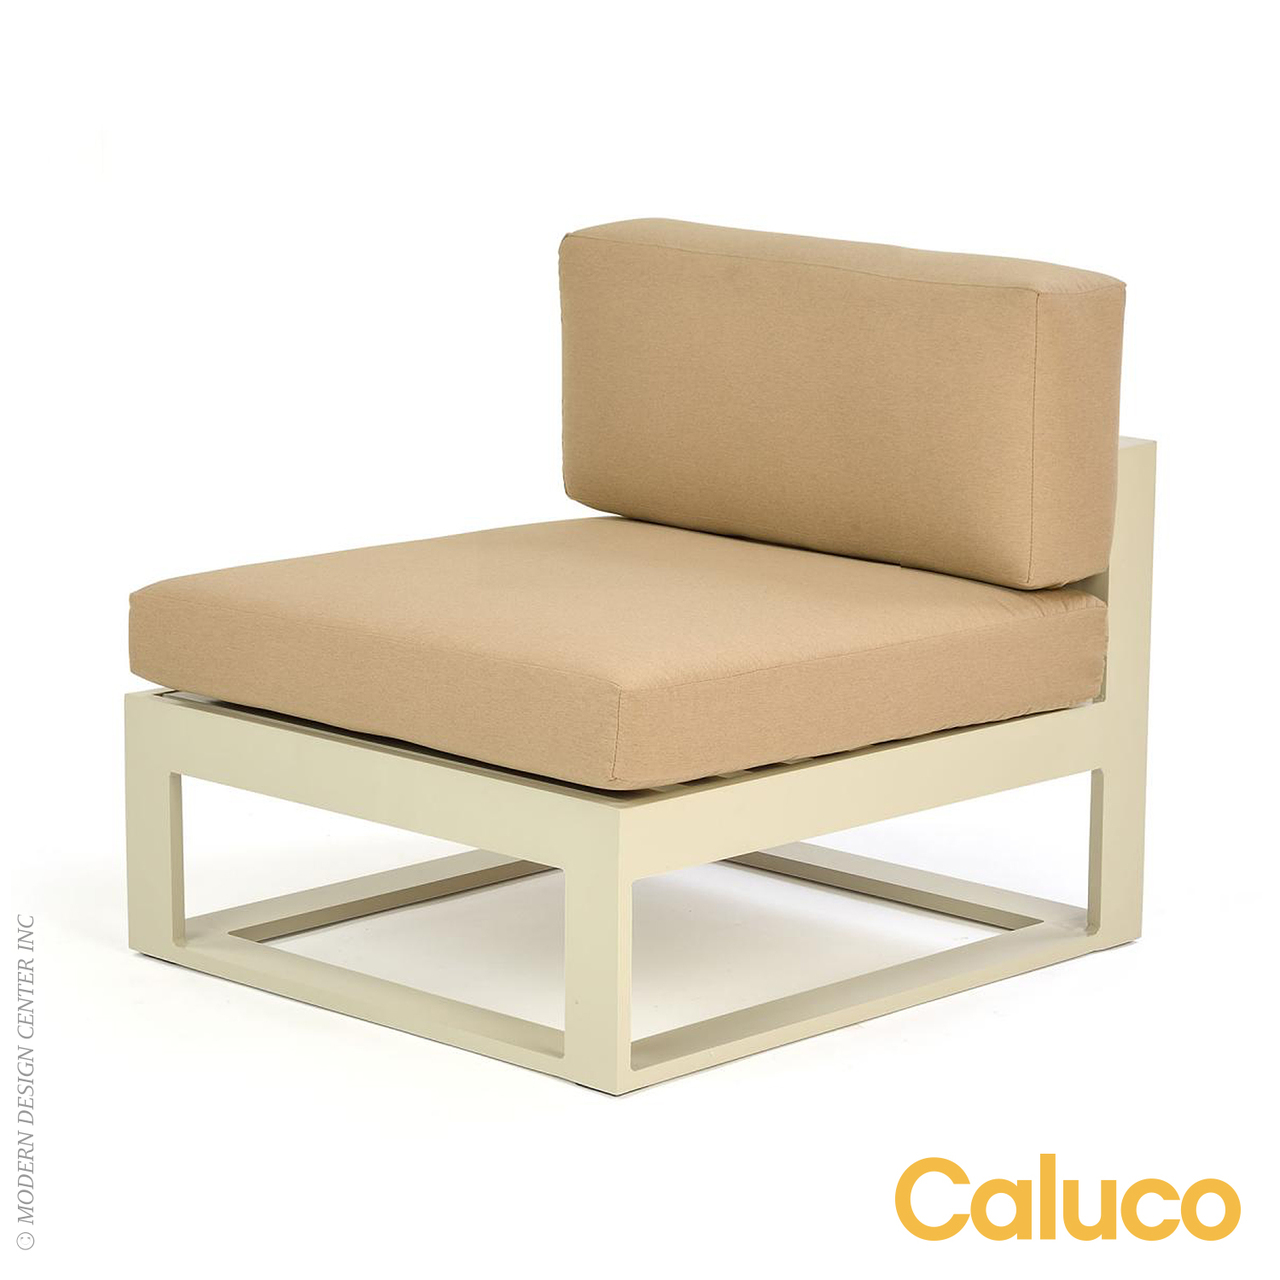 Space Sectional Middle | Caluco Patio Furniture